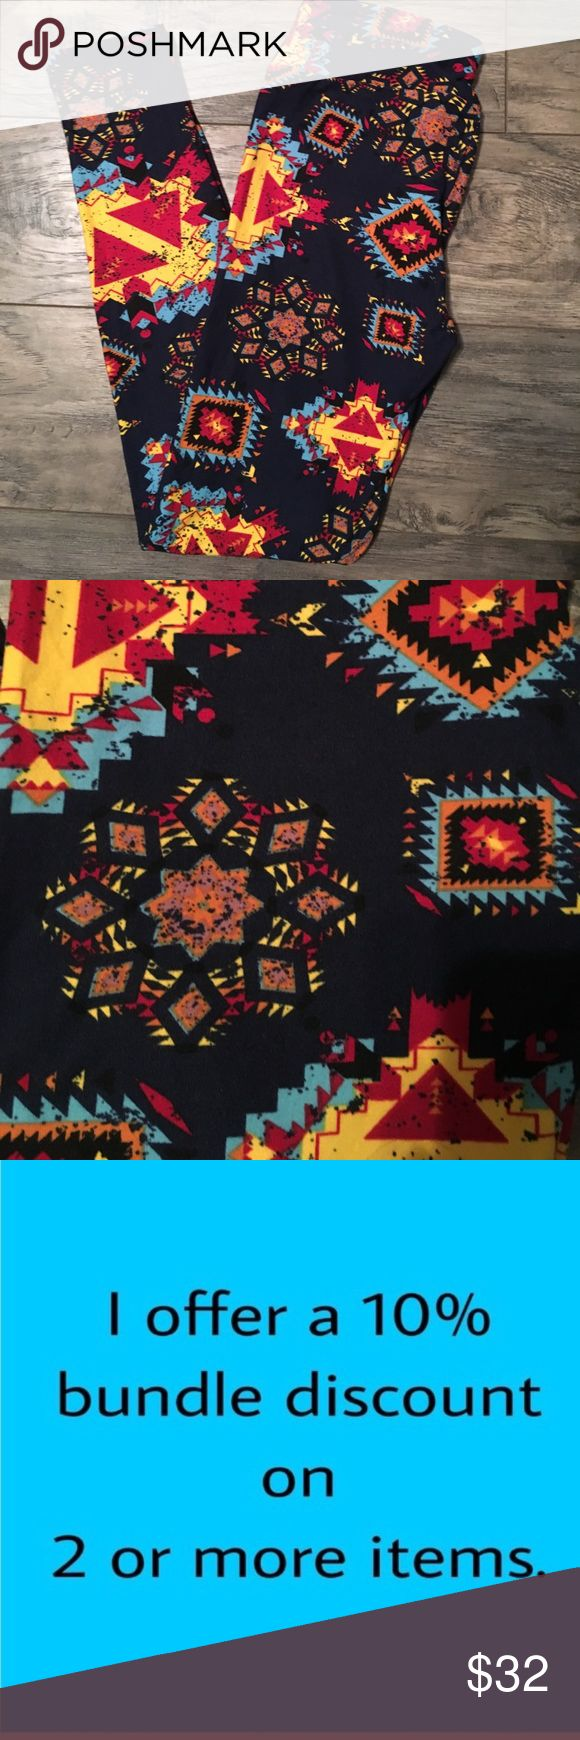 Gorgeous Aztec print OS LuLaRoe leggings nwt! Gorgeous Aztec print OS LuLaRoe leggings with dark navy background brand new with tags! LuLaRoe Pants Leggings